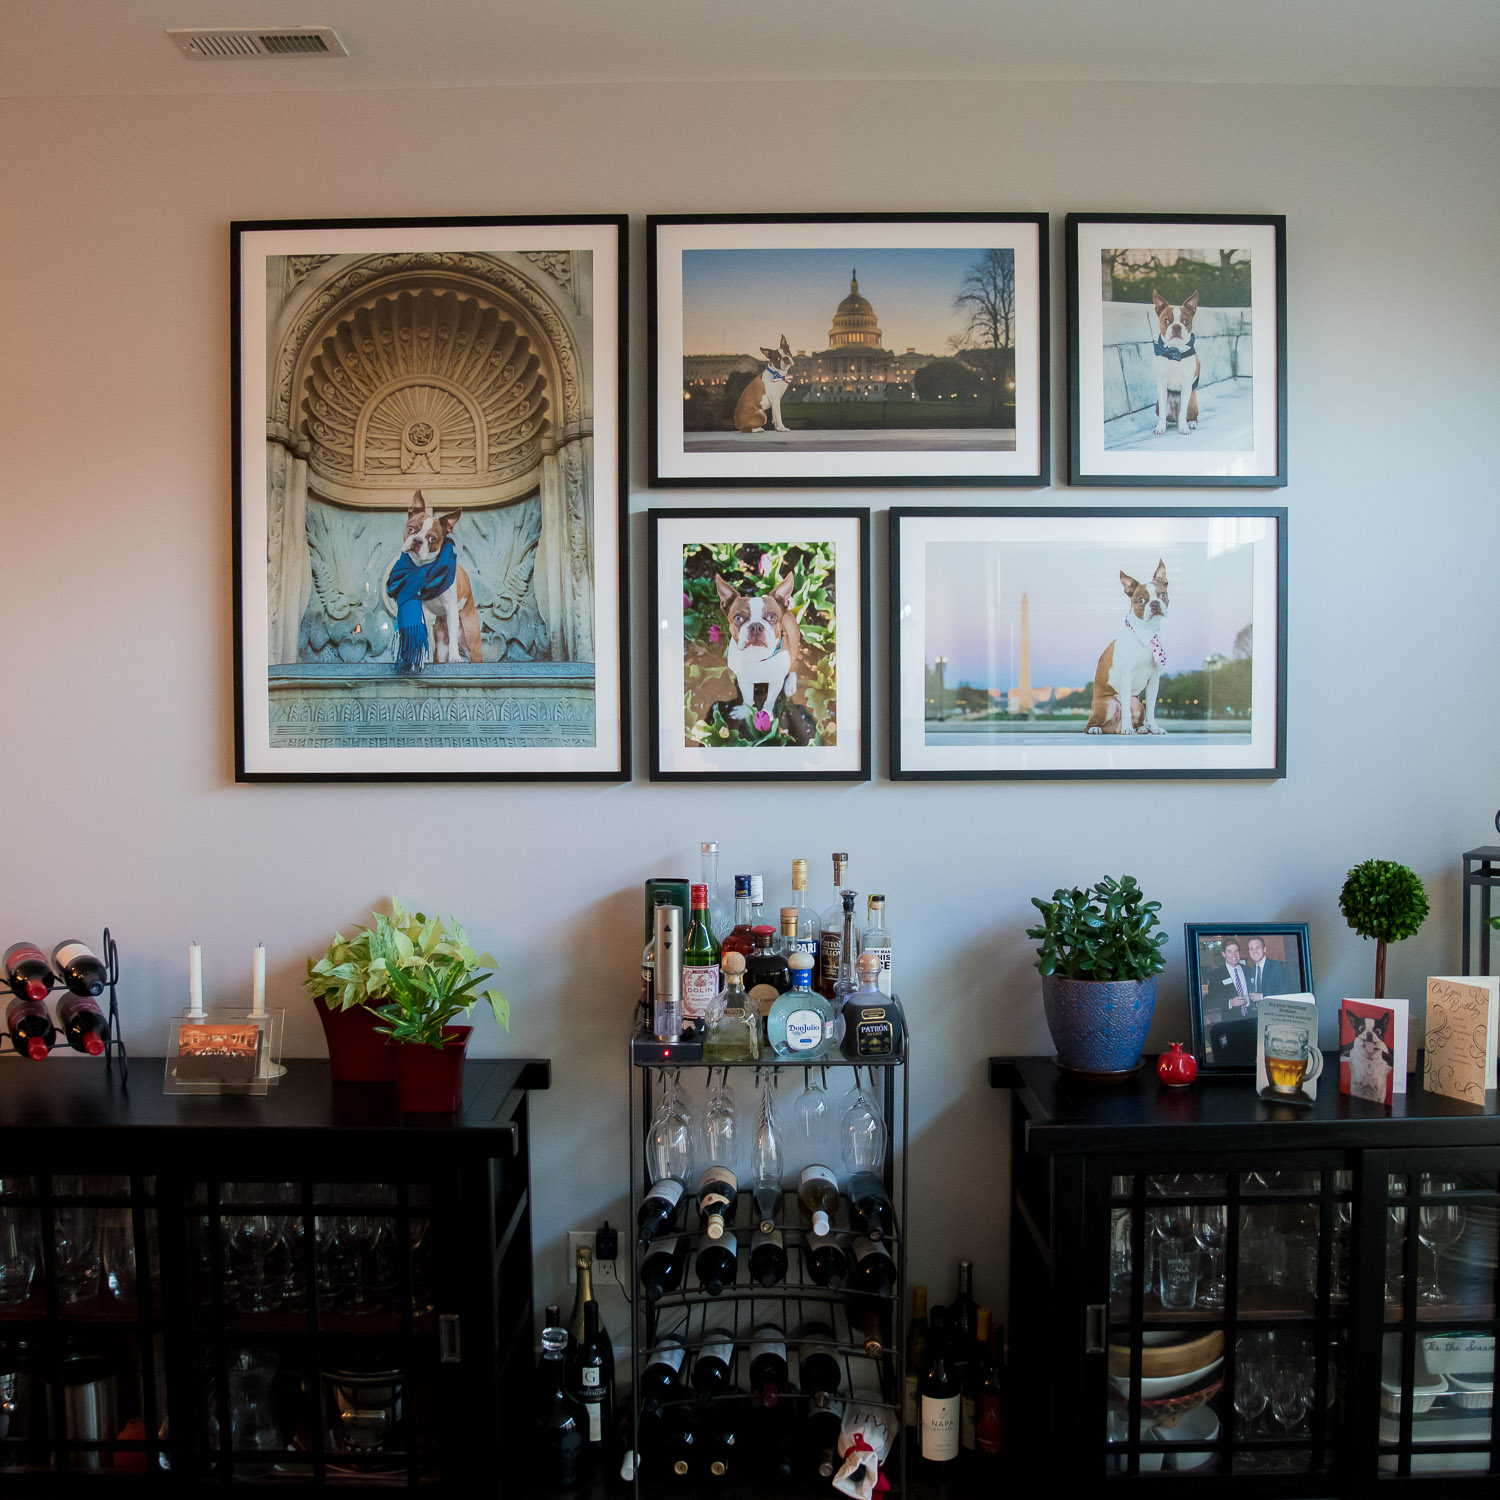 The final images printed and framed on the wall